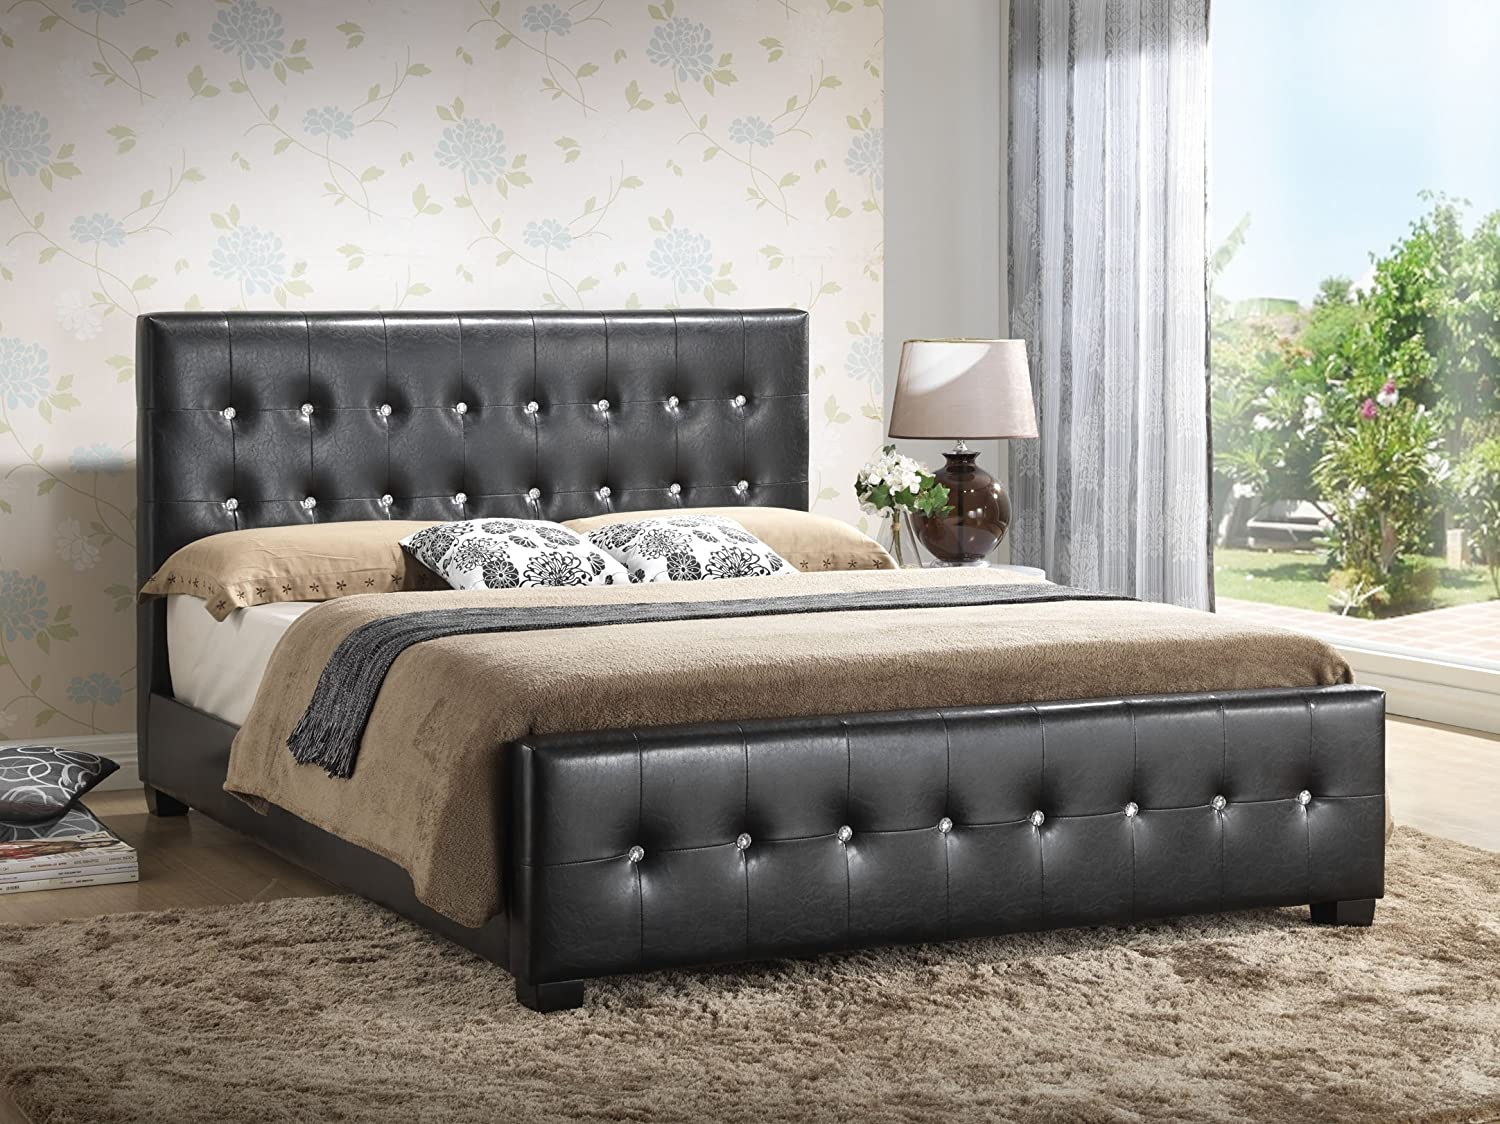 Perfect Amazon.com: Black   Queen Size   Modern Headboard Tufted Design Leather  Look Upholstered Bed: Kitchen U0026 Dining